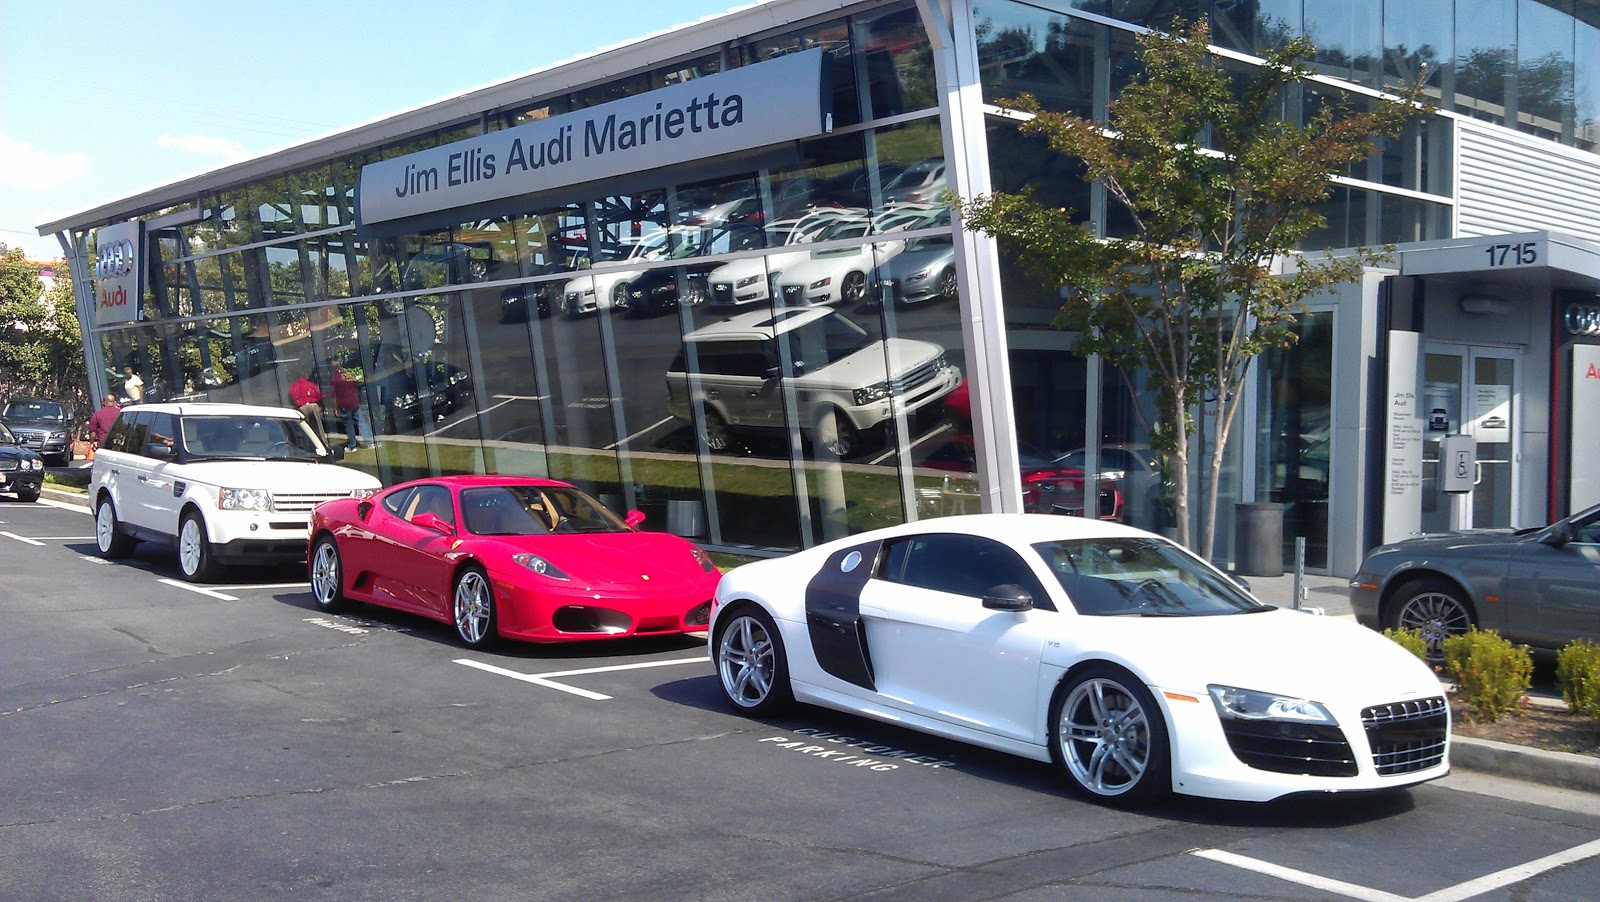 James E Boening Jim Ellis Audi Of Marietta - Jim ellis audi marietta